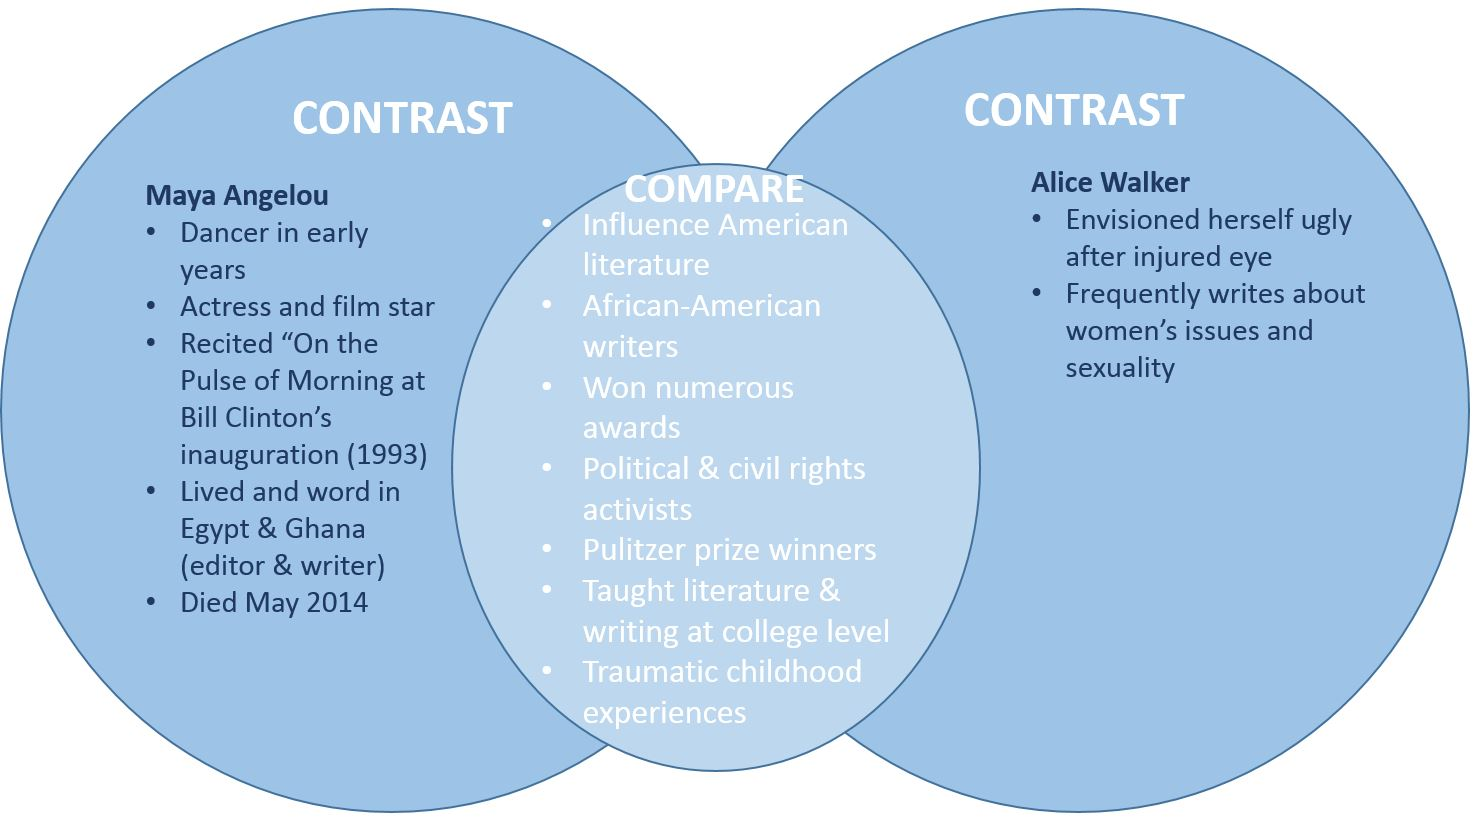 contrast and comparison essay examples If you need a good comparison essay example to get more ideas for your task – read the article below we will talk about comparison essay writing in detail.